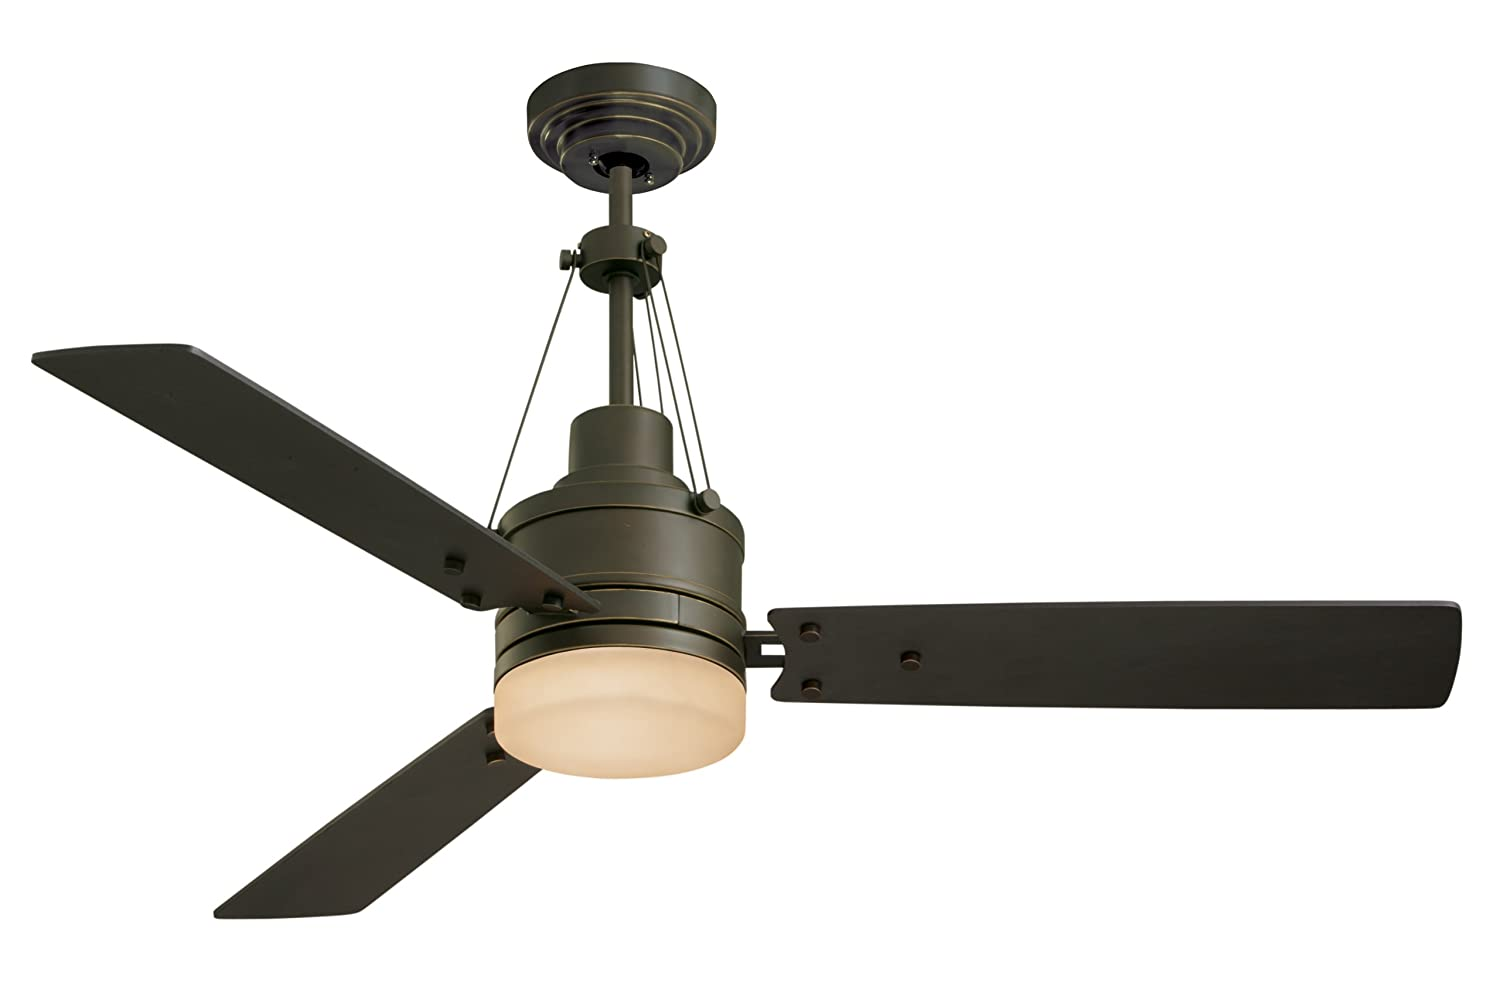 Emerson cf205ges ceiling fan with light and remote 54 inch blades emerson cf205ges ceiling fan with light and remote 54 inch blades golden espresso close to ceiling light fixtures amazon aloadofball Images